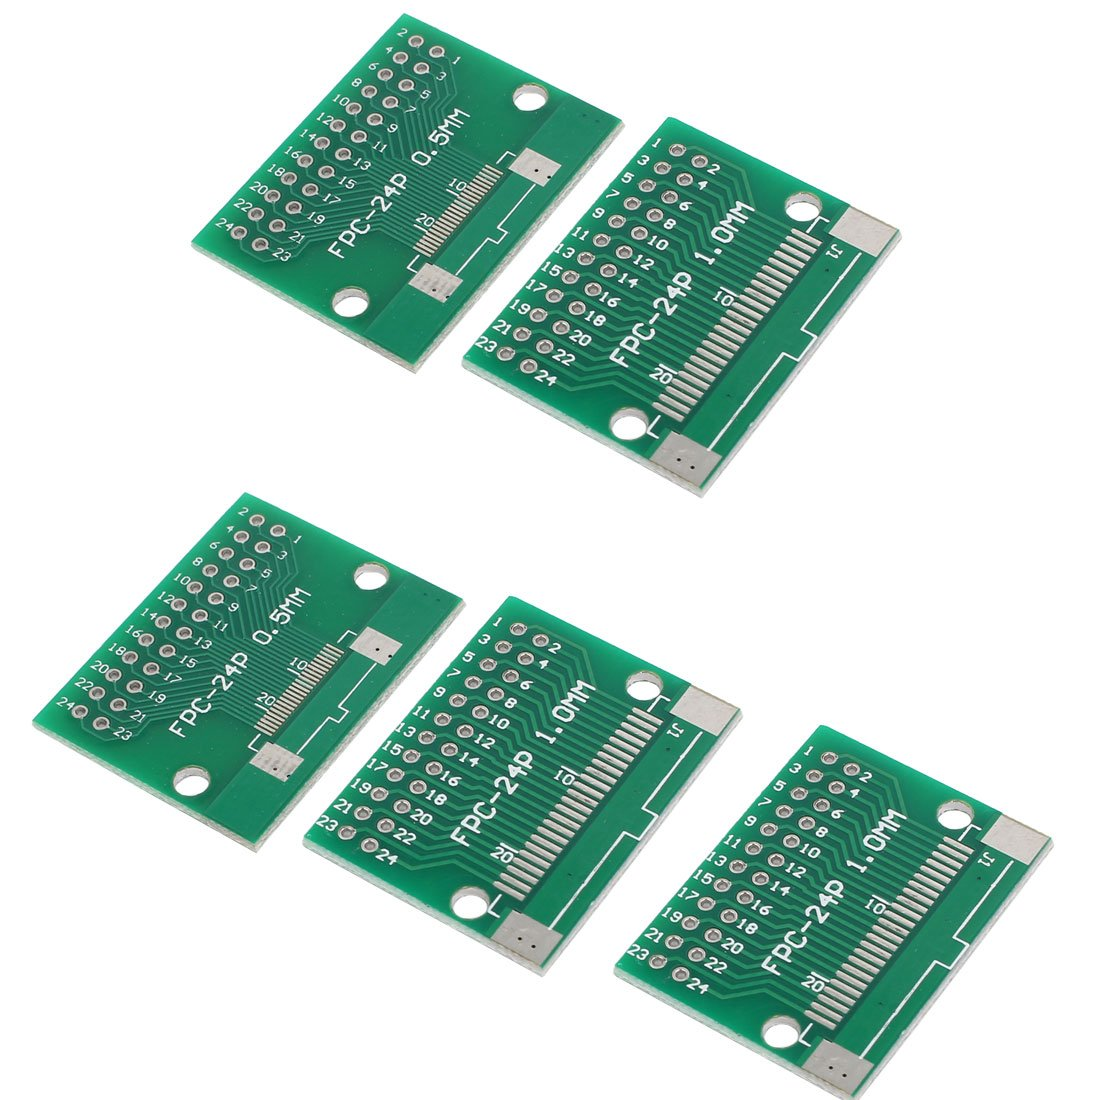 uxcell 5pcs Prototyping Double Side PCB Board Stripboard Green 34mmx26.5mm